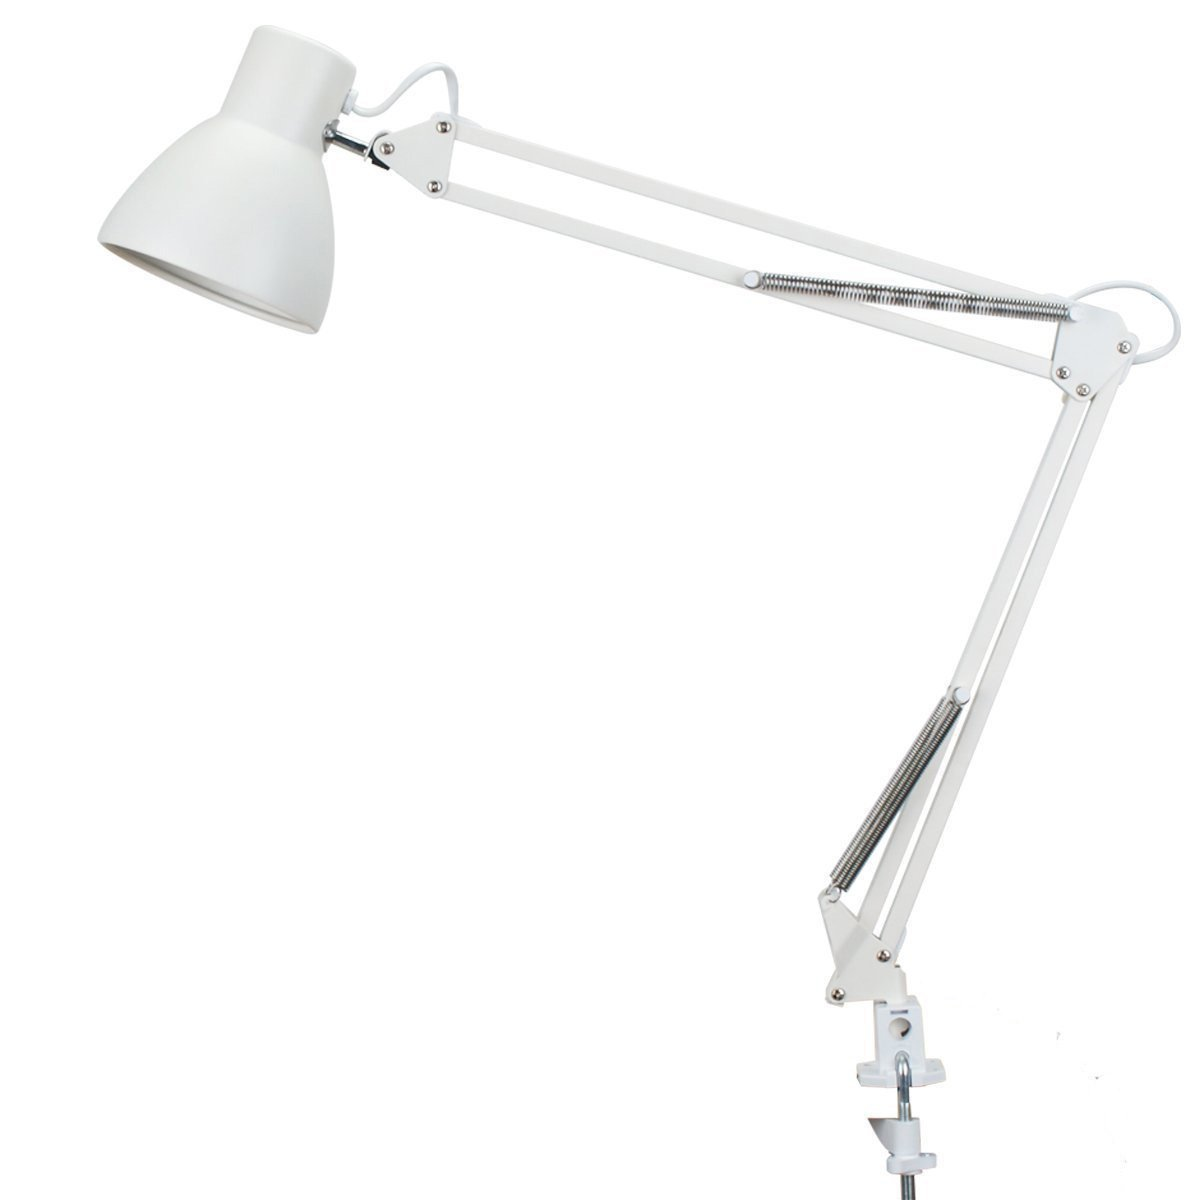 ToJane Swing Arm Desk Lamp,Architect Table Clamp Mounted Light, Flexible Arm Drawing/Office/Studio Table Lamp,Grey Metal Finish TG801-GY